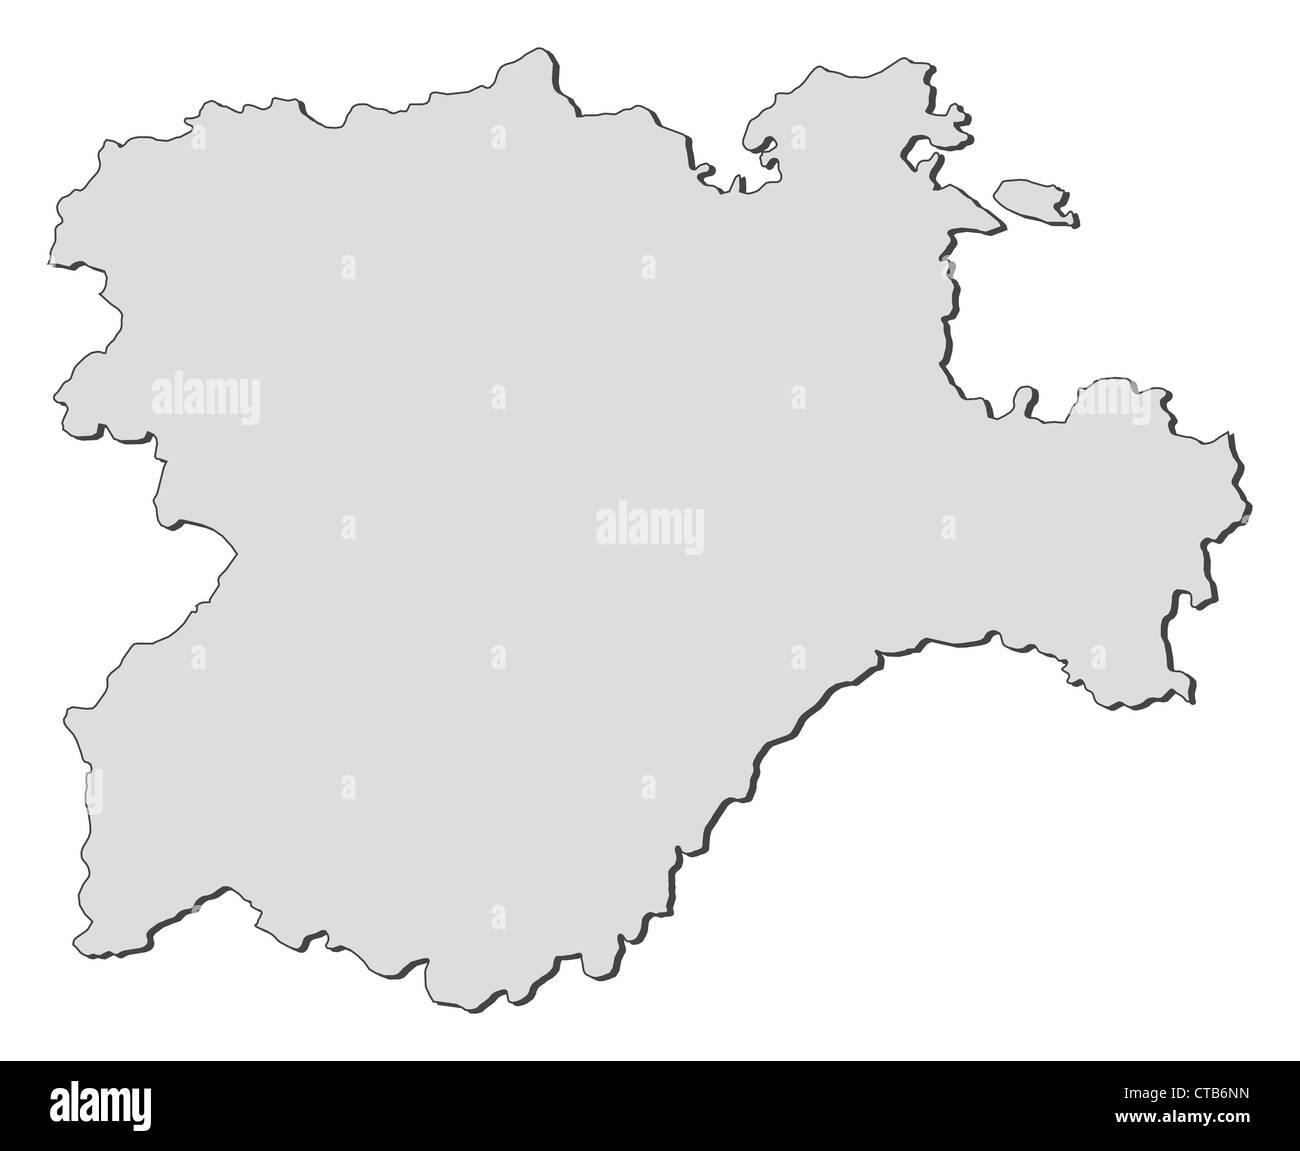 Map of Castile and León, a region of Spain. - Stock Image